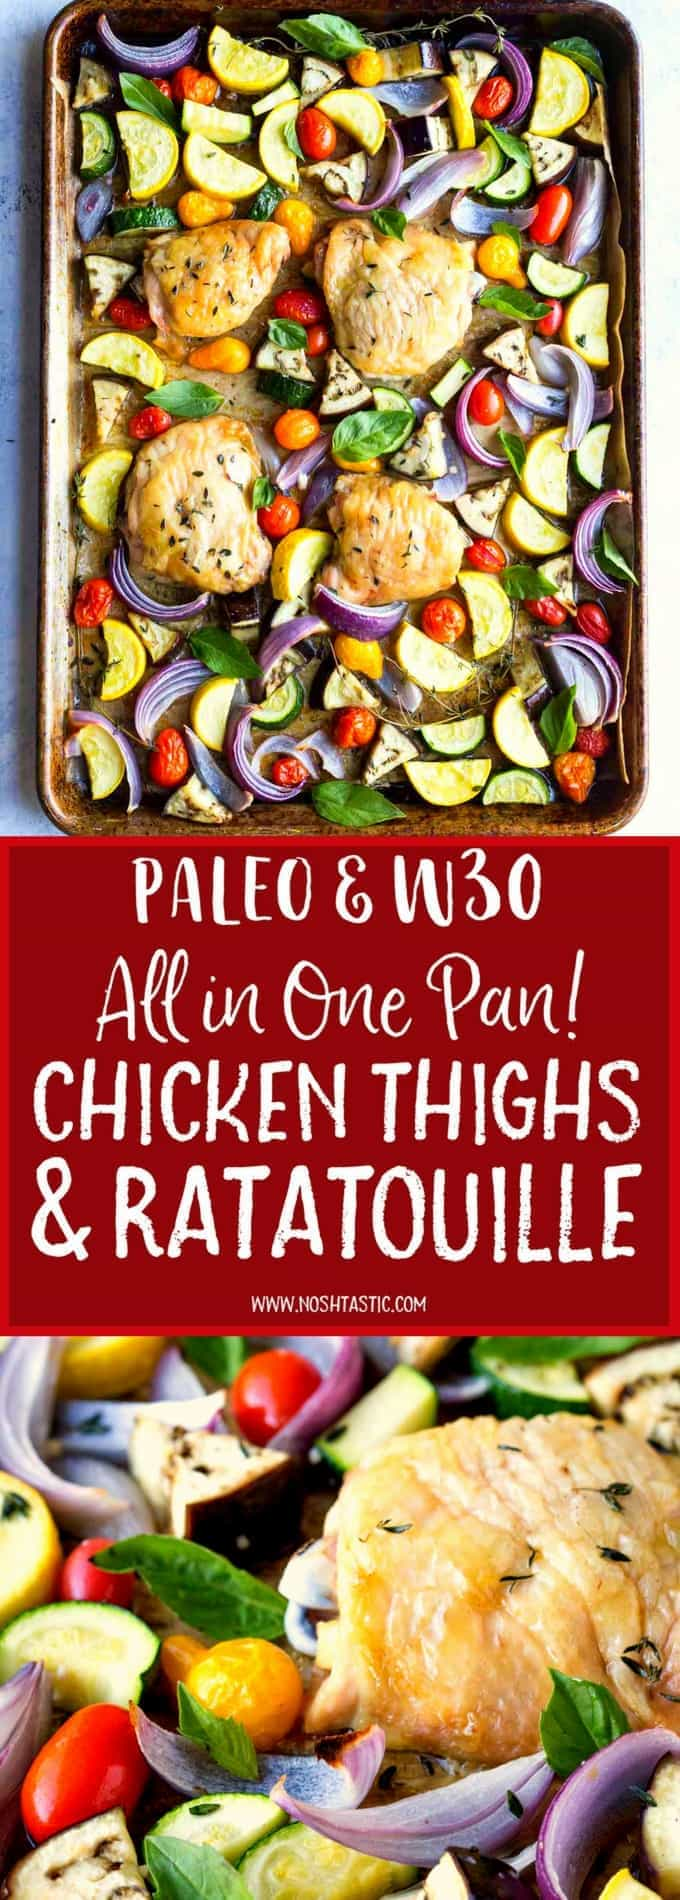 Paleo Chicken Thighs with Oven Roasted Ratatouille! A healthy one pan meal with red onions, zucchini, basil, chicken and tomatoes. It's also gluten free, low carb, healthy and Whole30 compliant.